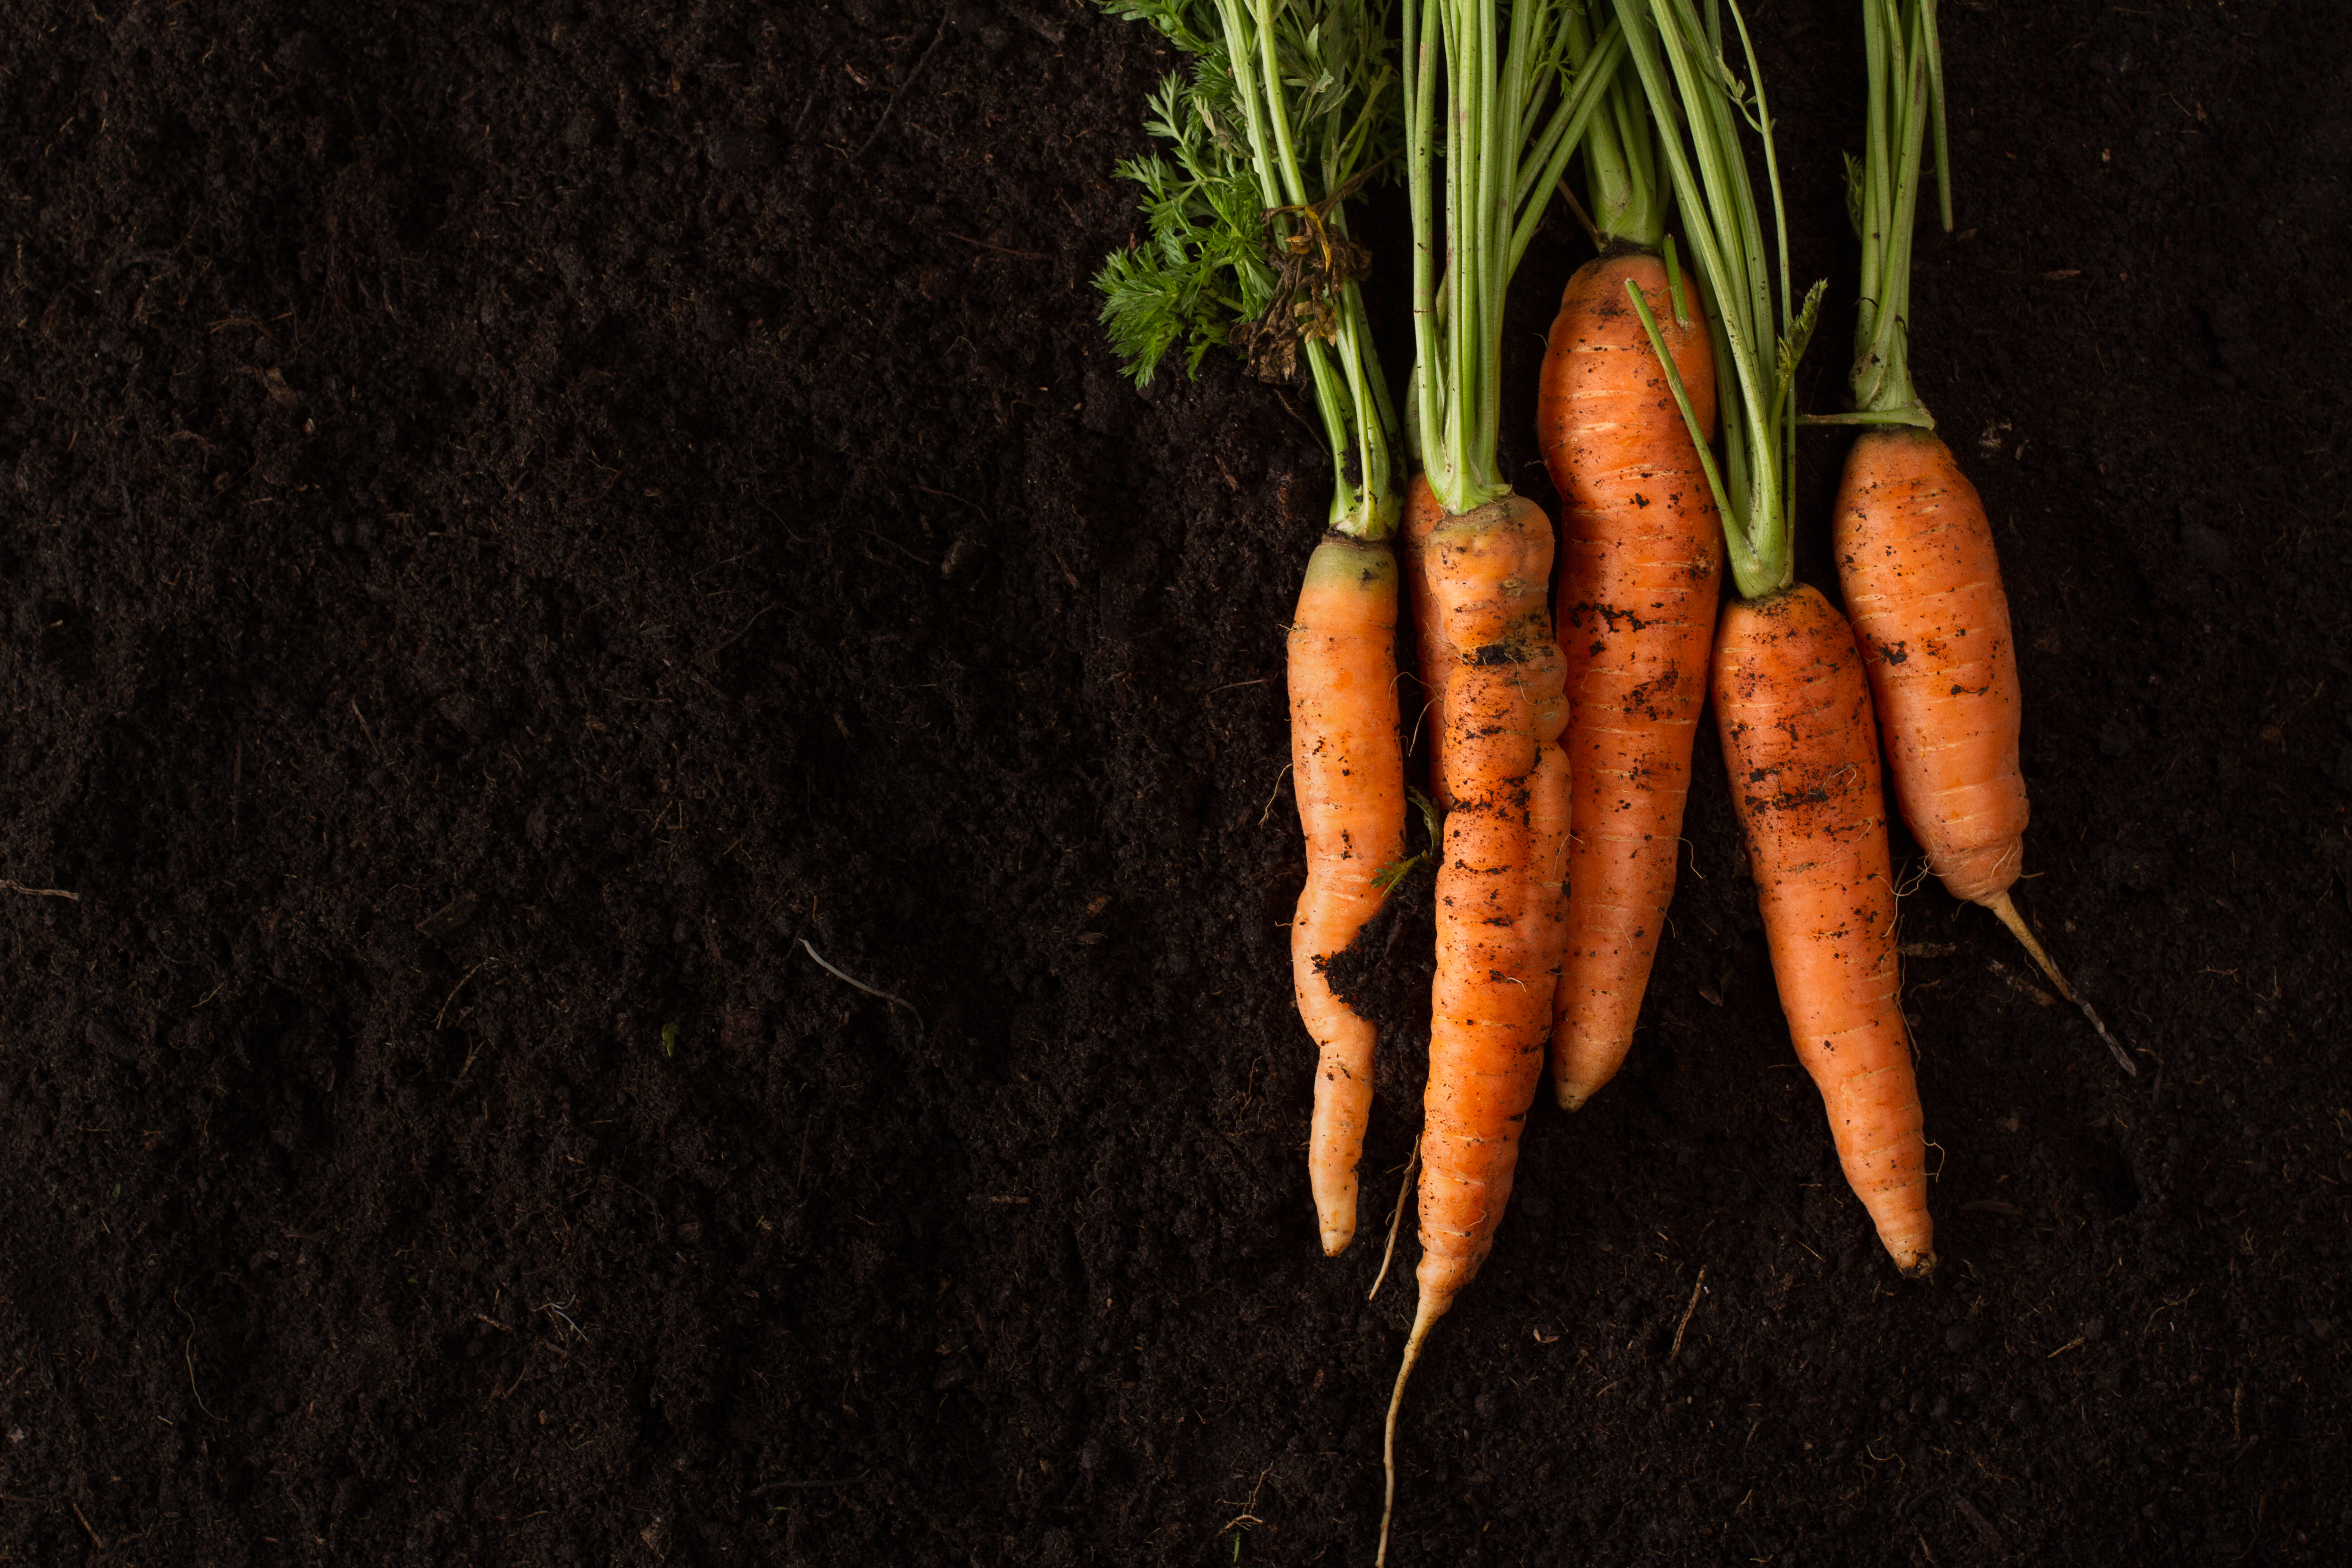 fresh-carrots-on-dark-soil-background-texture-P4NAXR7